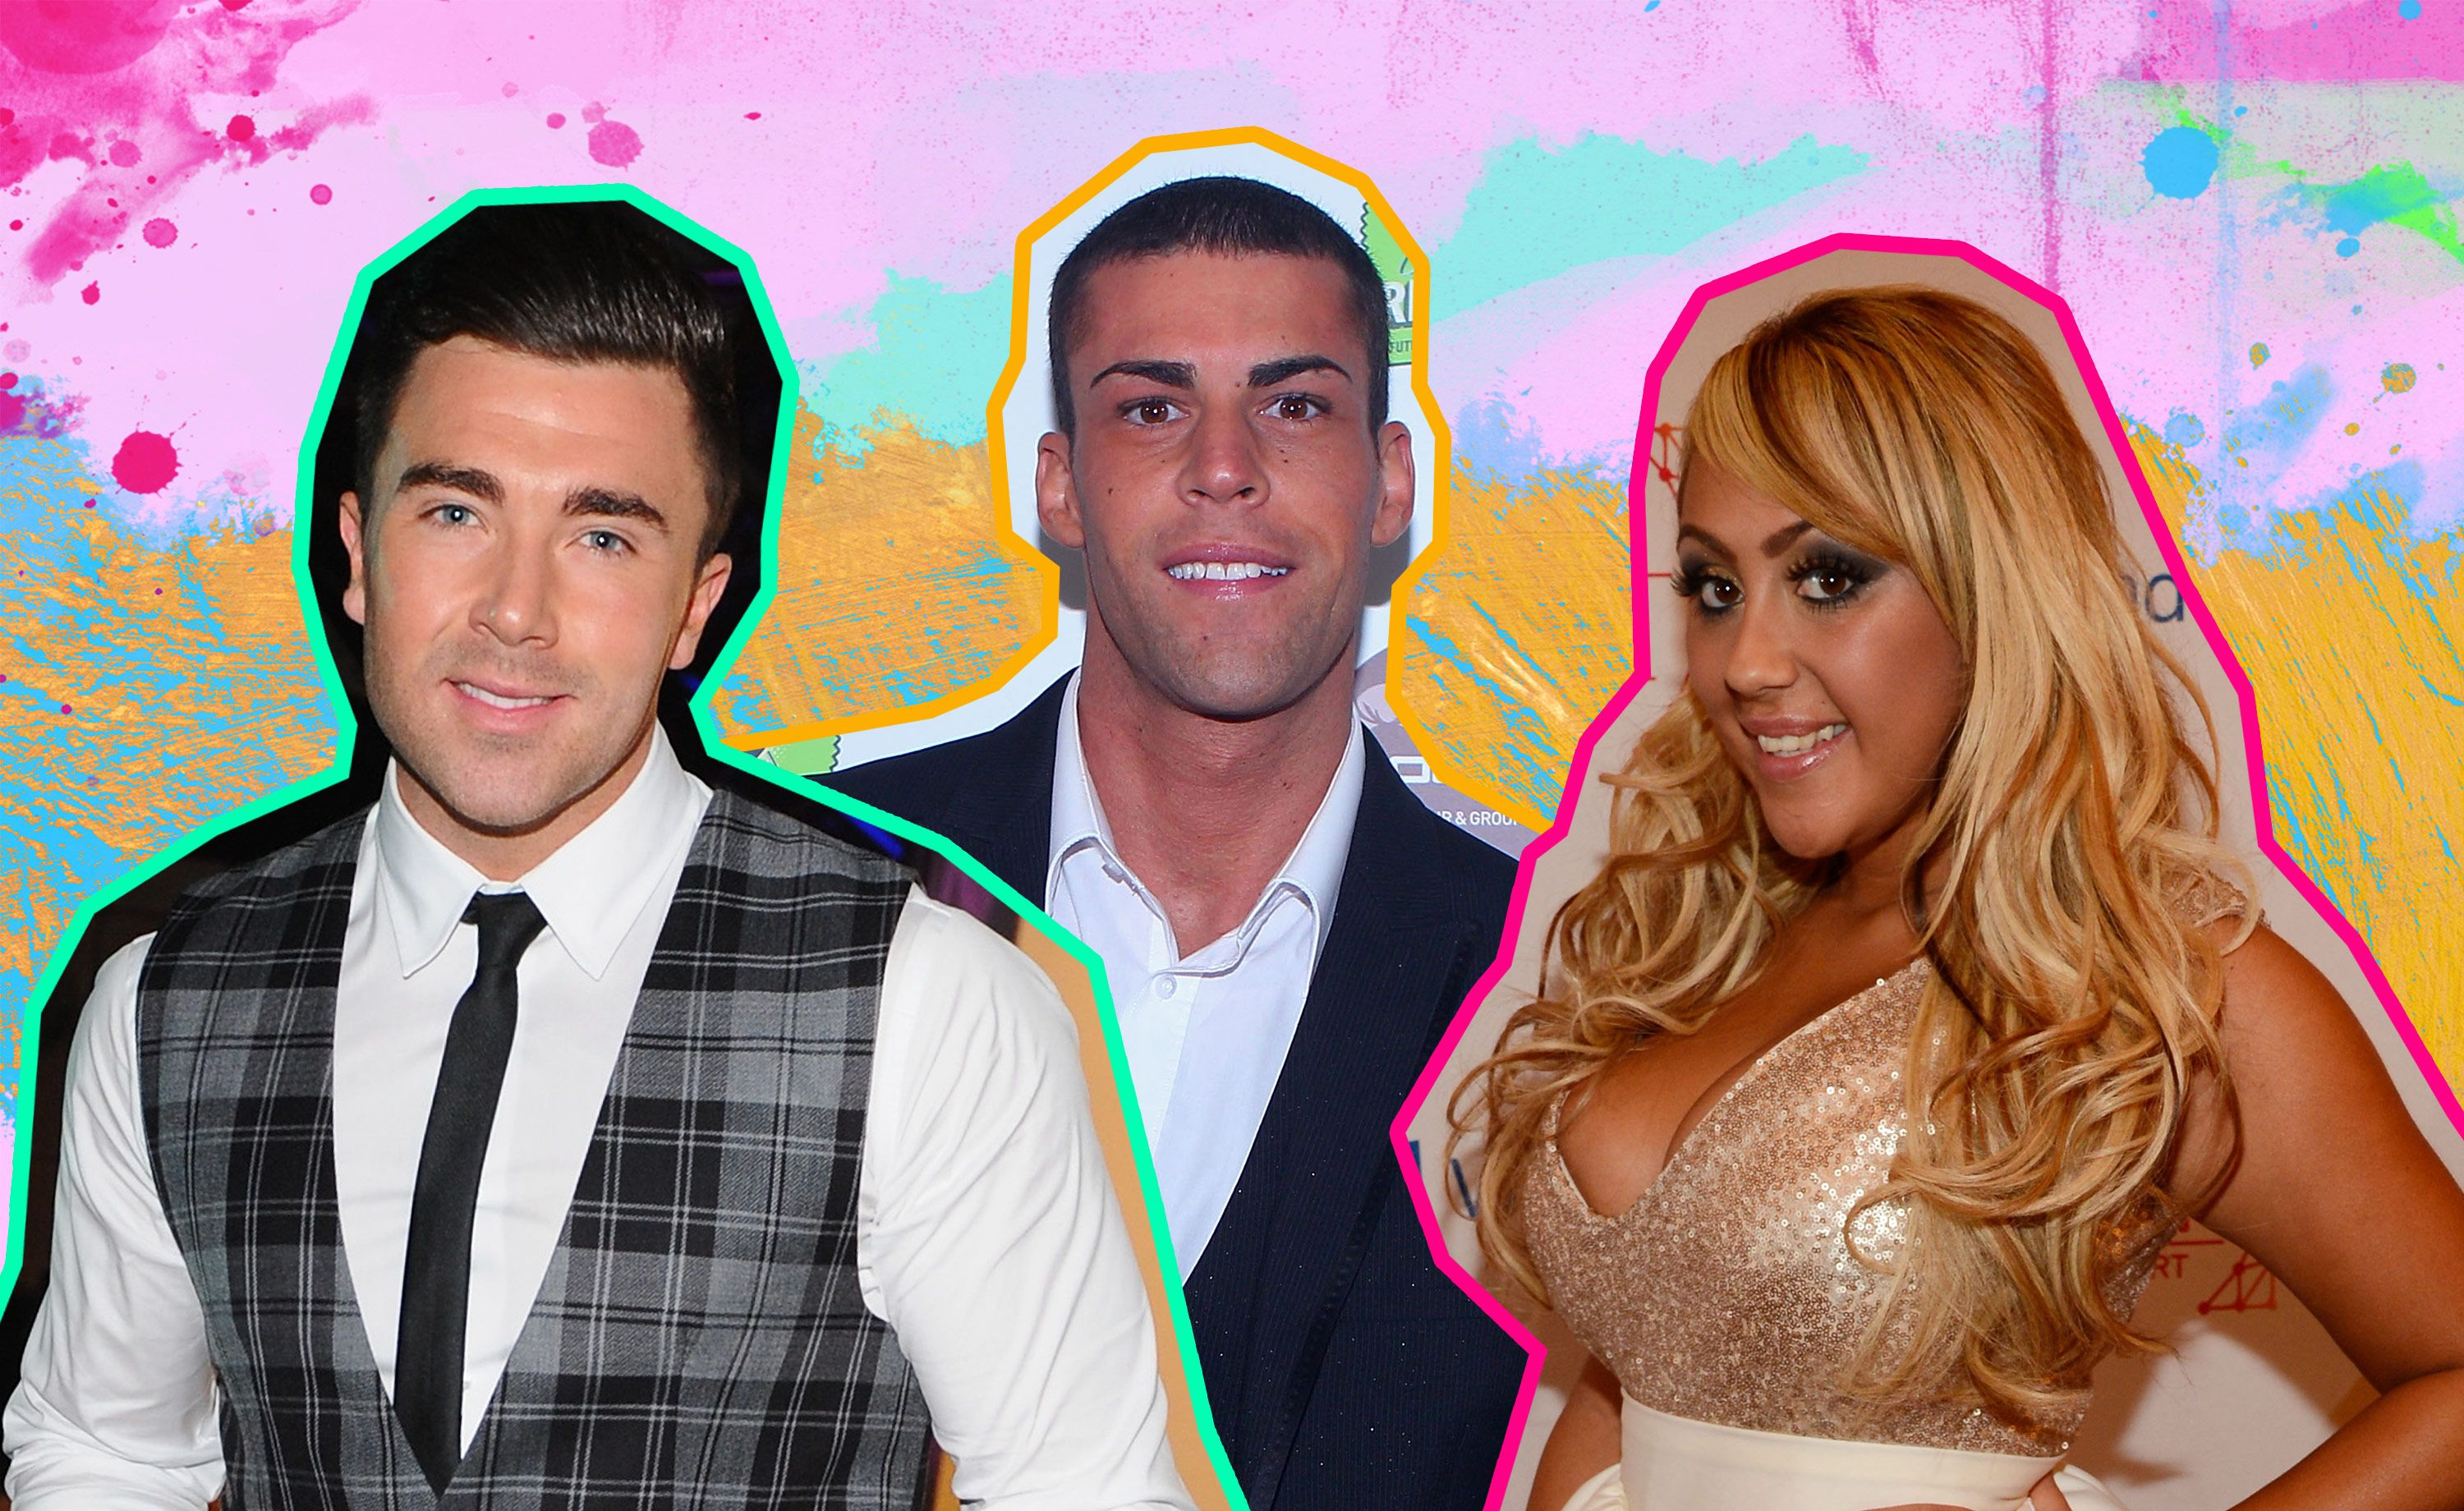 Who is holly dating from geordie shore